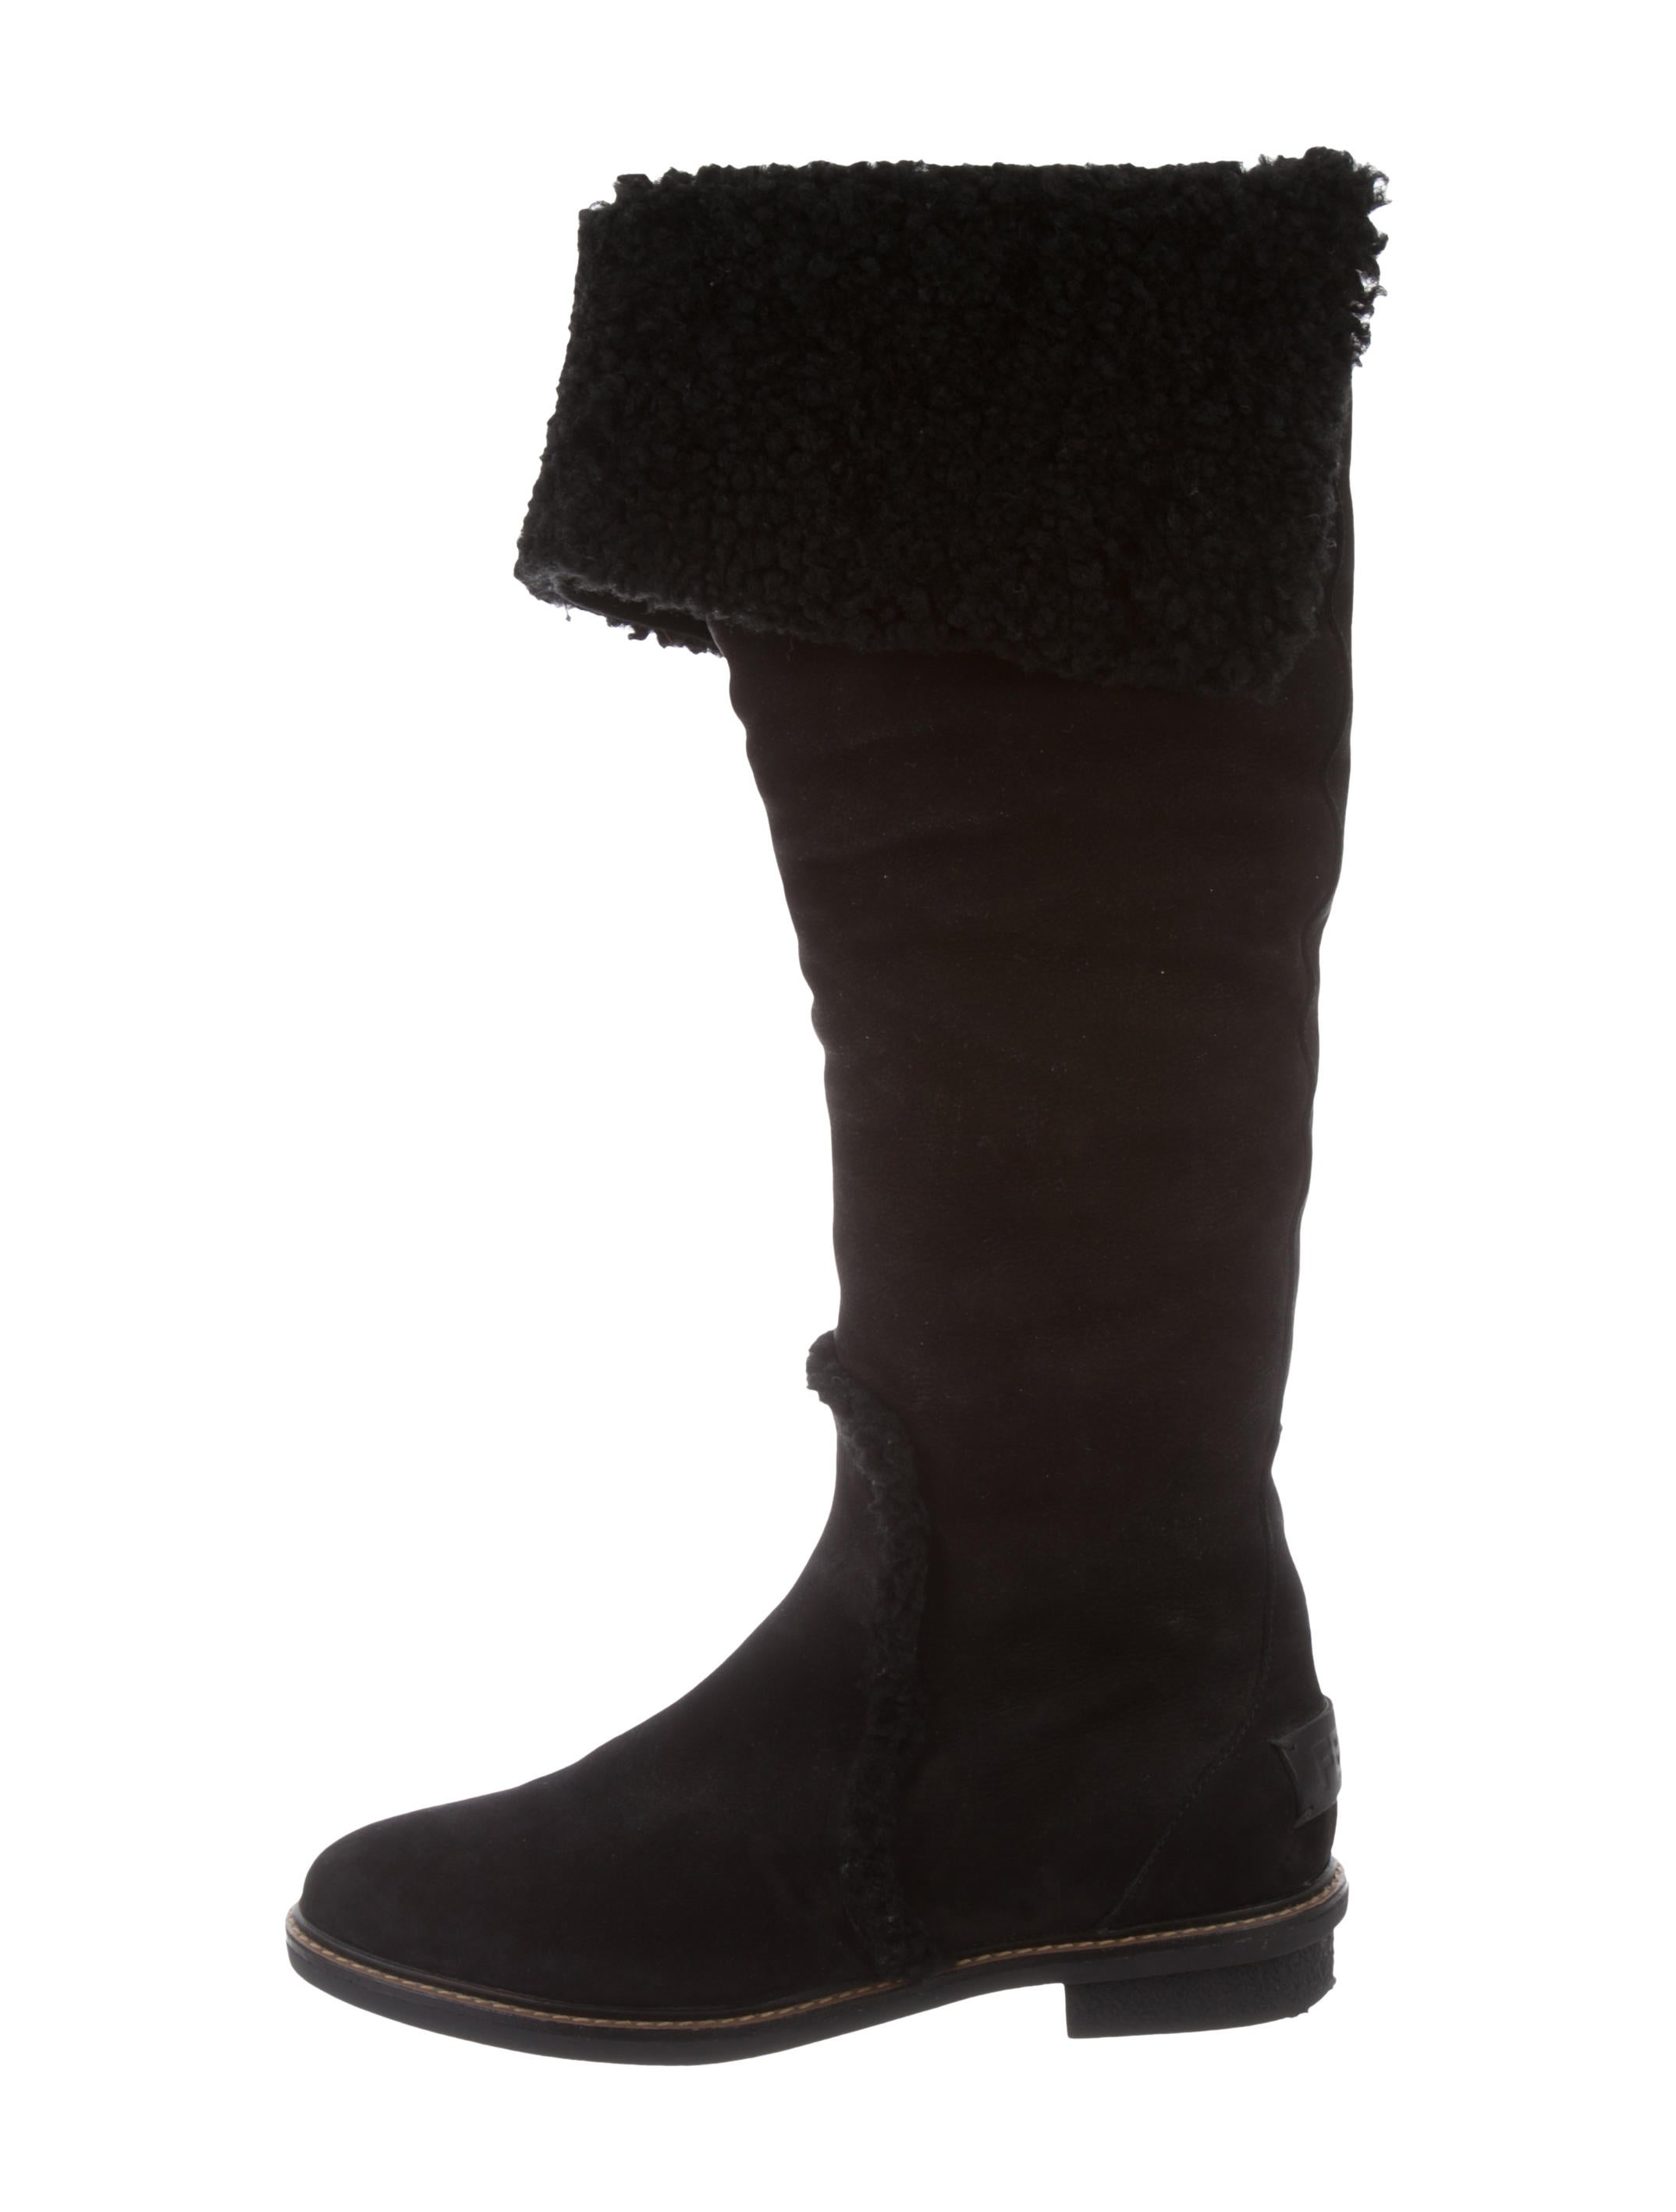 wholesale price for sale Fendi Shearling-Trimmed Knee-High Boots amazing price cheap online cheap sale reliable fashion Style AAOfzeqsK